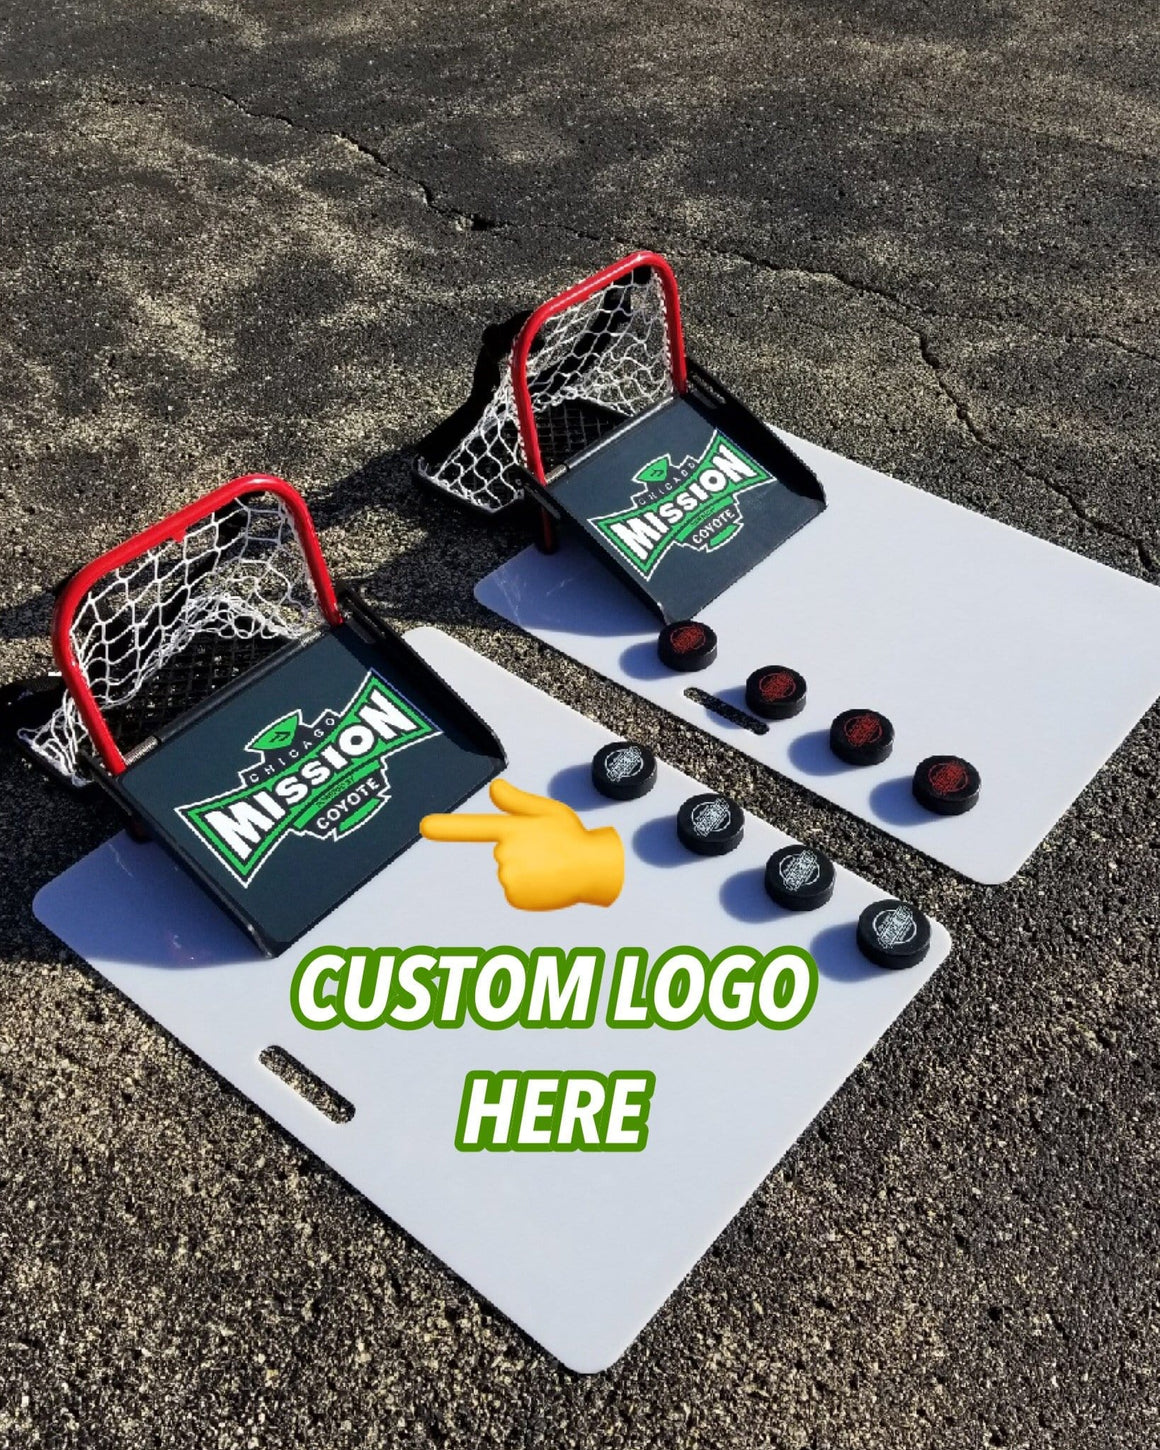 CUSTOM LOGO = Original Hockey Sauce Kit Full Kit